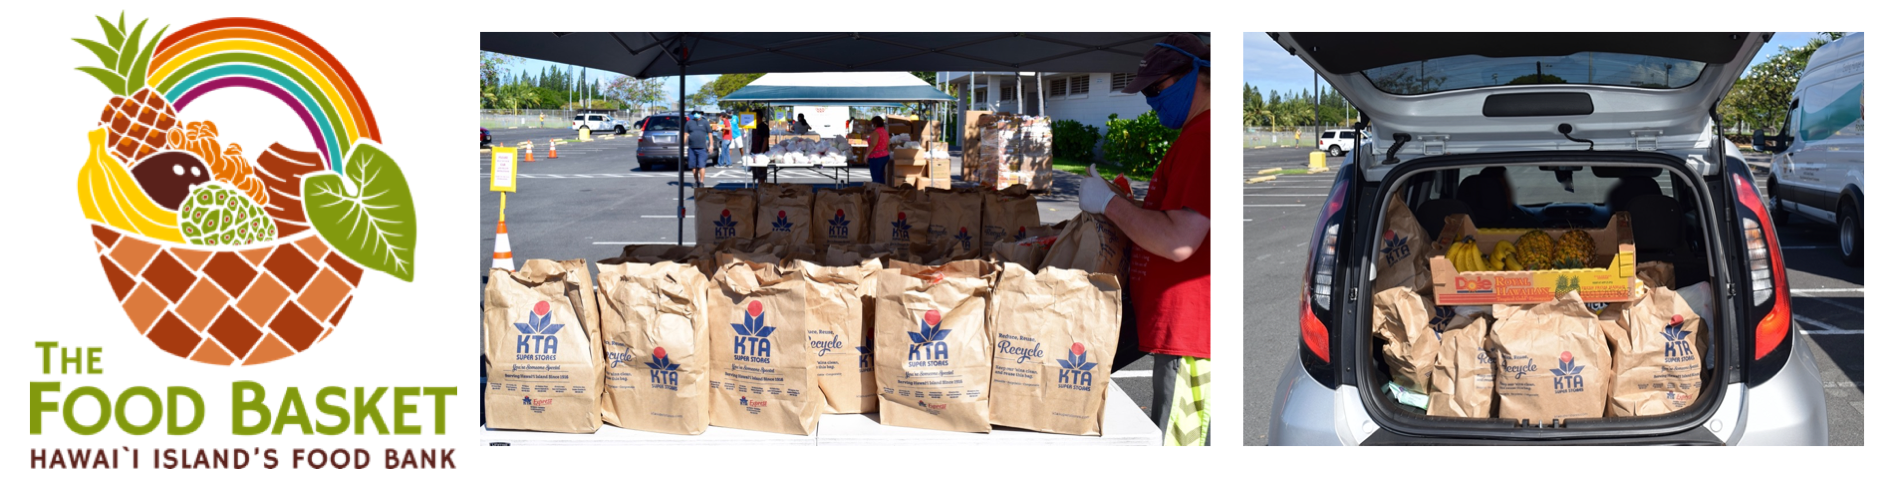 The Food Basket, Hawai'i Islands Food Bank, Ohana Drop at Old Kona Airport Park.